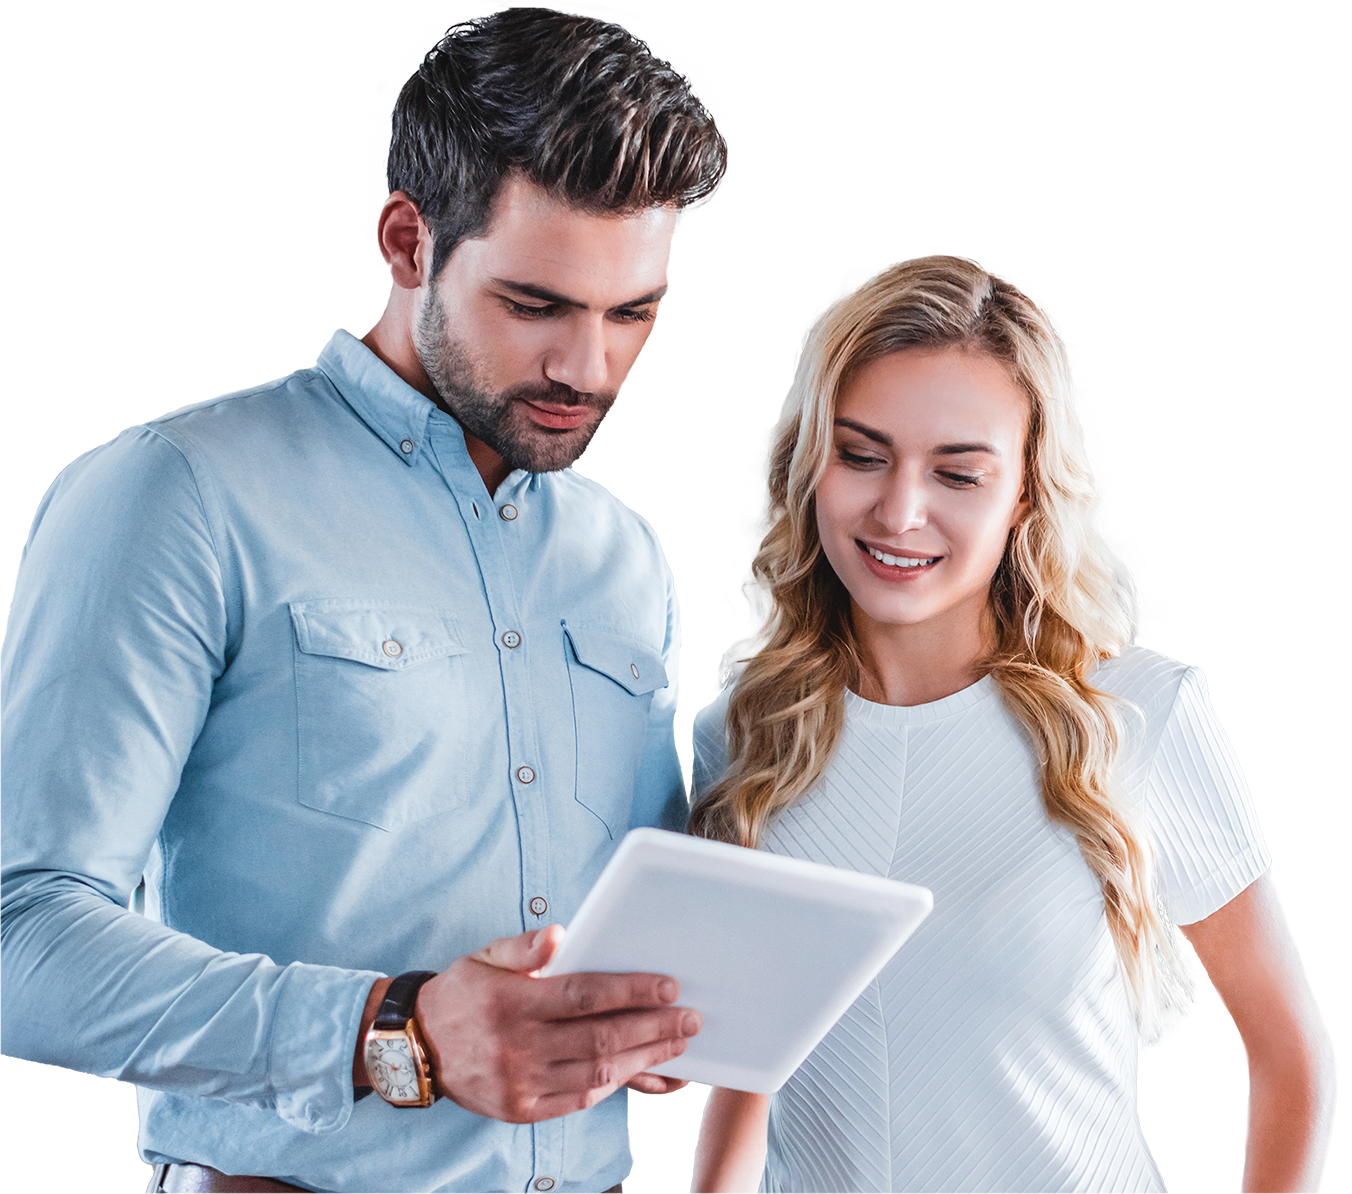 Professional man in blue collared shirt and woman in white professional top looking down at ipad screen